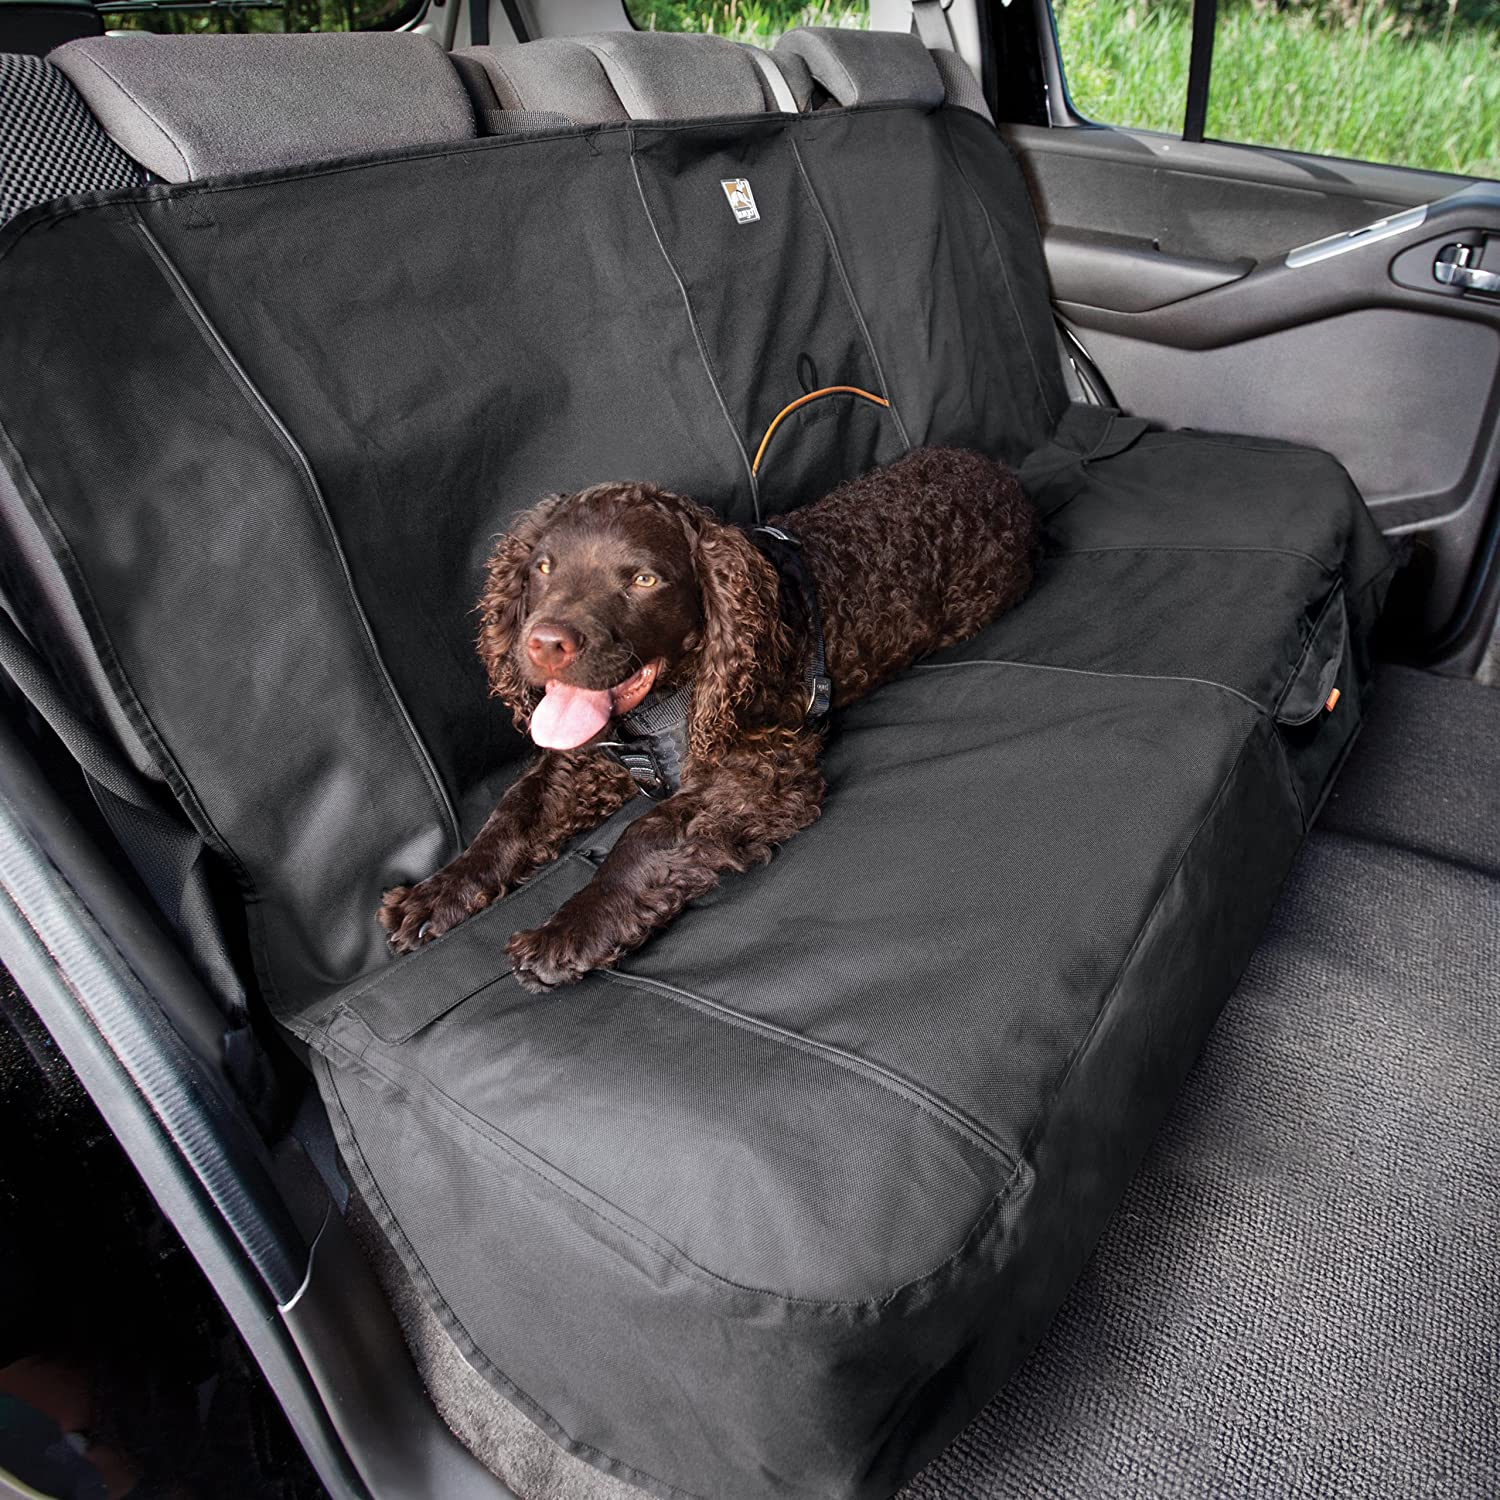 Kurgo Rear Car Seat Cover For Dogs Waterproof And Scratch Resistant Regular Size